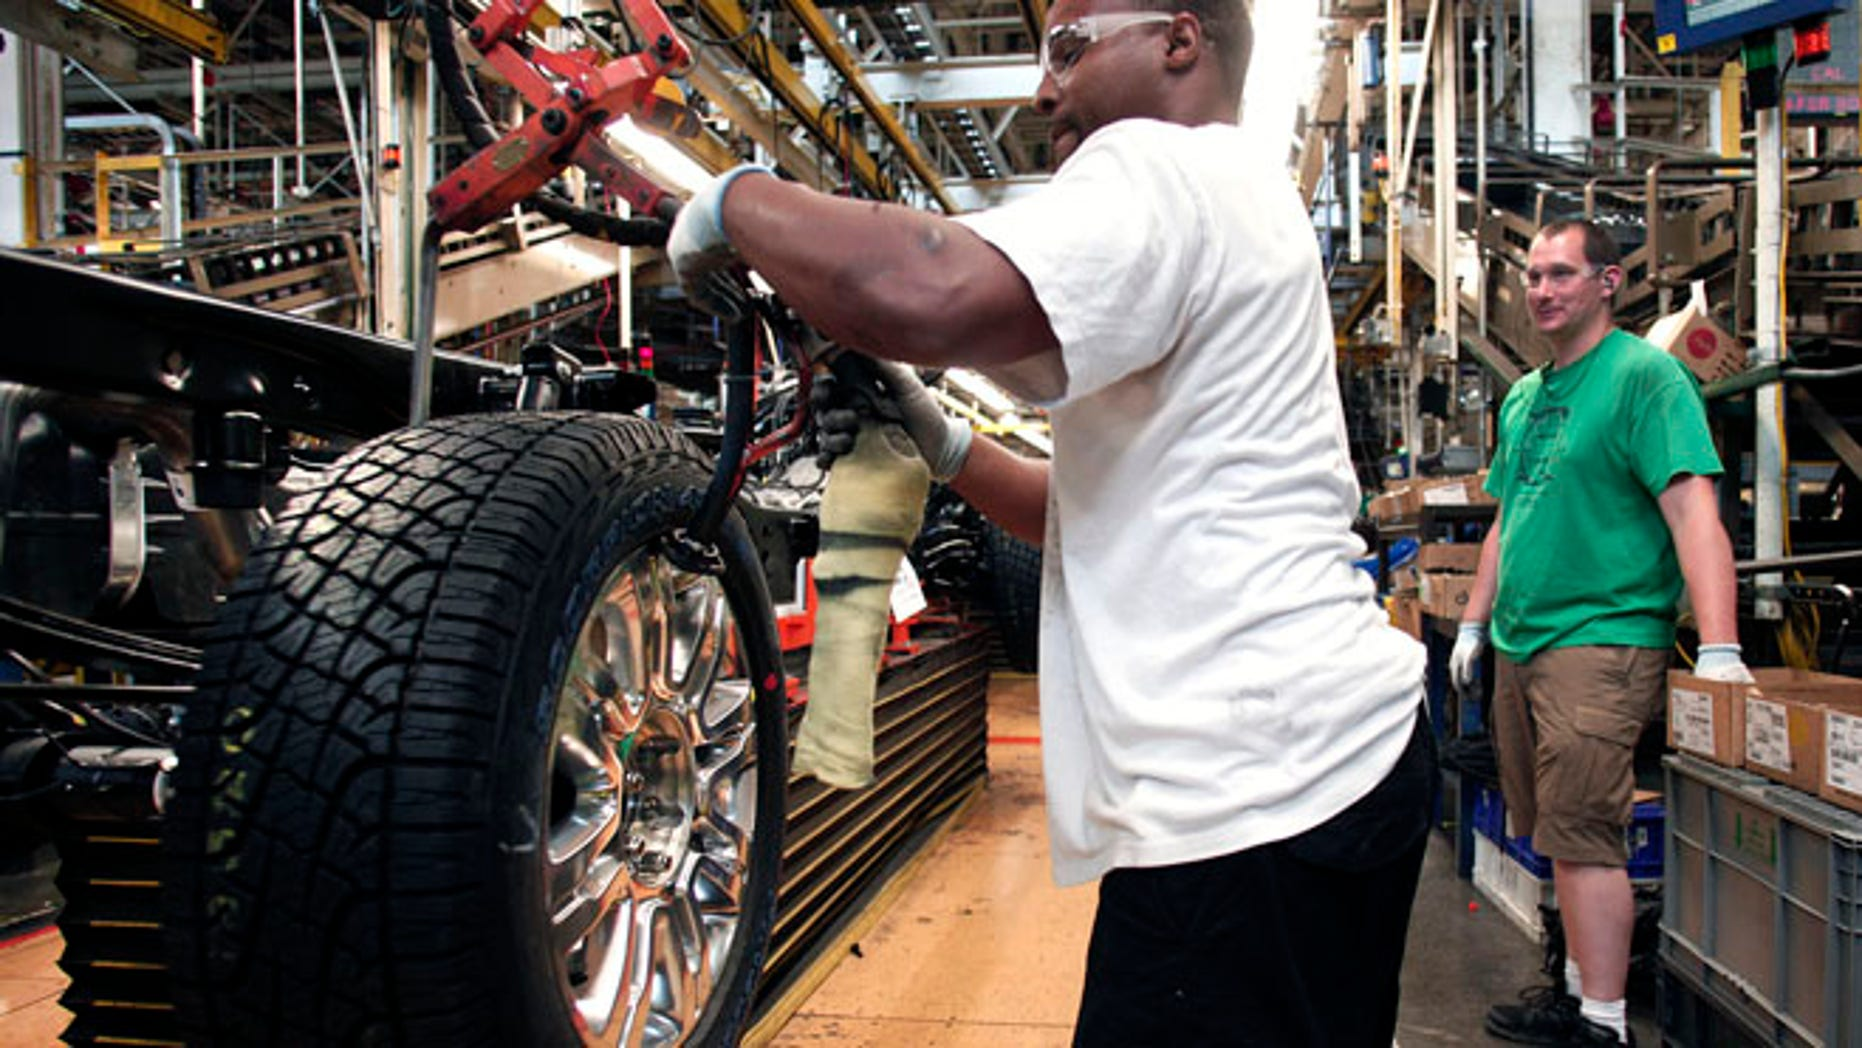 DEARBORN, MI - JUNE 13: New Ford worker Reginald Gilder, in his first week on the job, performs a tire installation on a new 2014 Ford F-150 truck as it undergoes assembly at the Ford Dearborn Truck Plant June 13, 2014 in Dearborn, Michigan. Production for the 2015 model F-150 at the plant is expected to begin in the 4th quarter of this year. (Photo by Bill Pugliano/Getty Images)